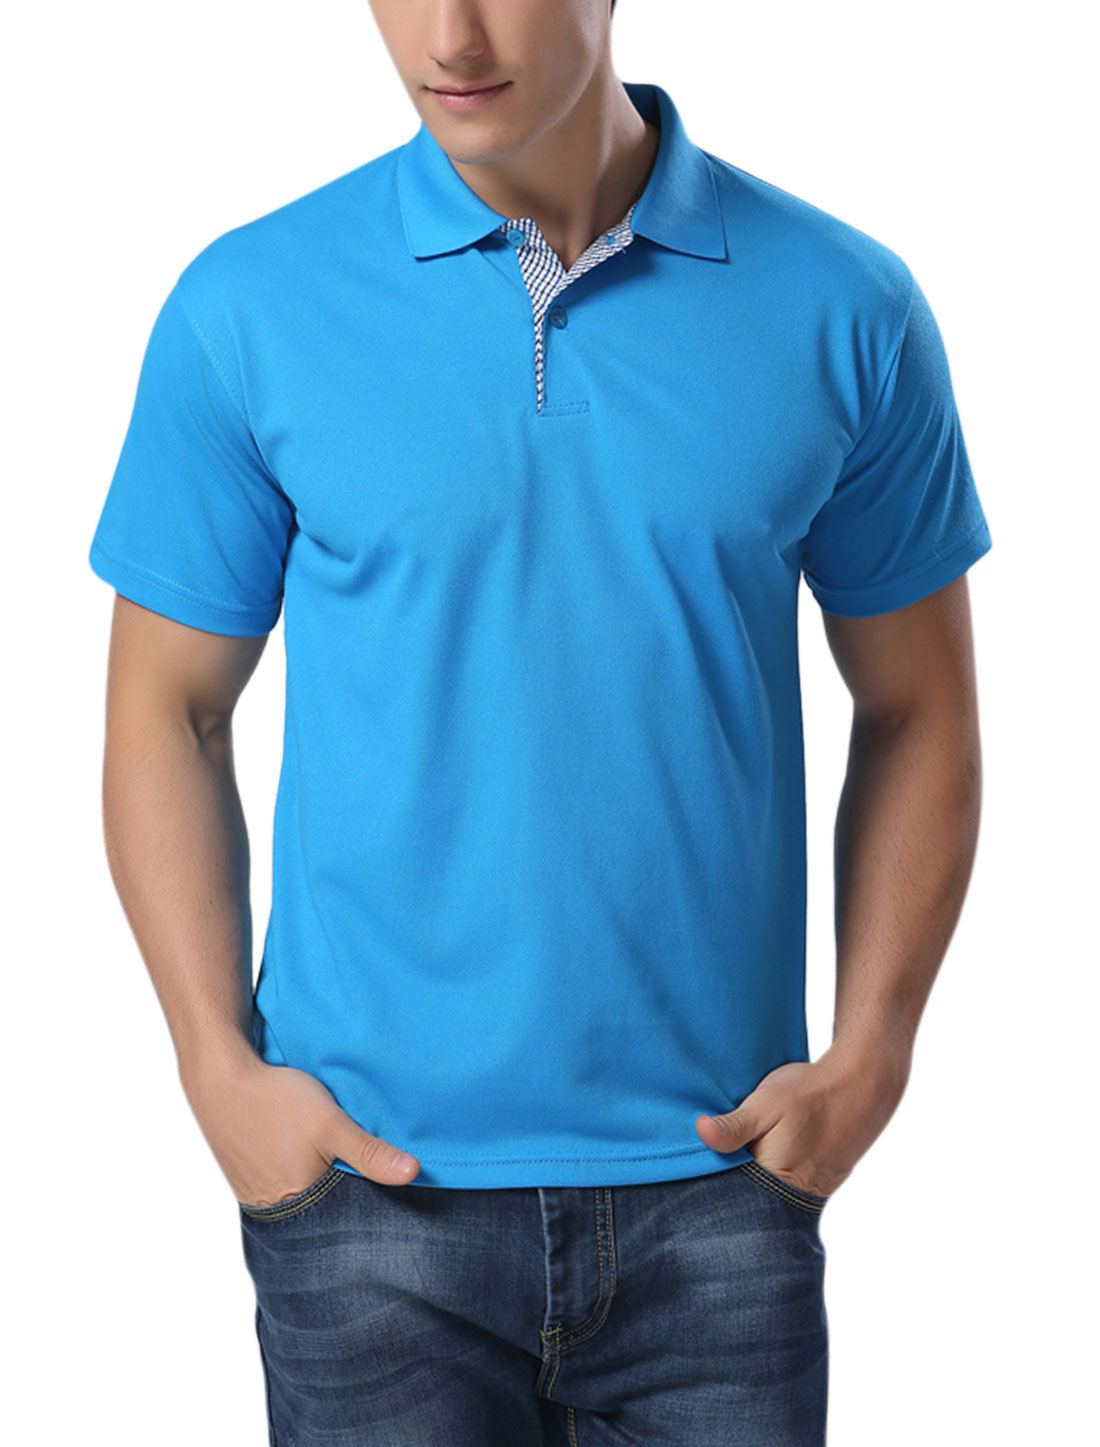 Man Point Collar Button Placket Sport Shirts Turquoise L